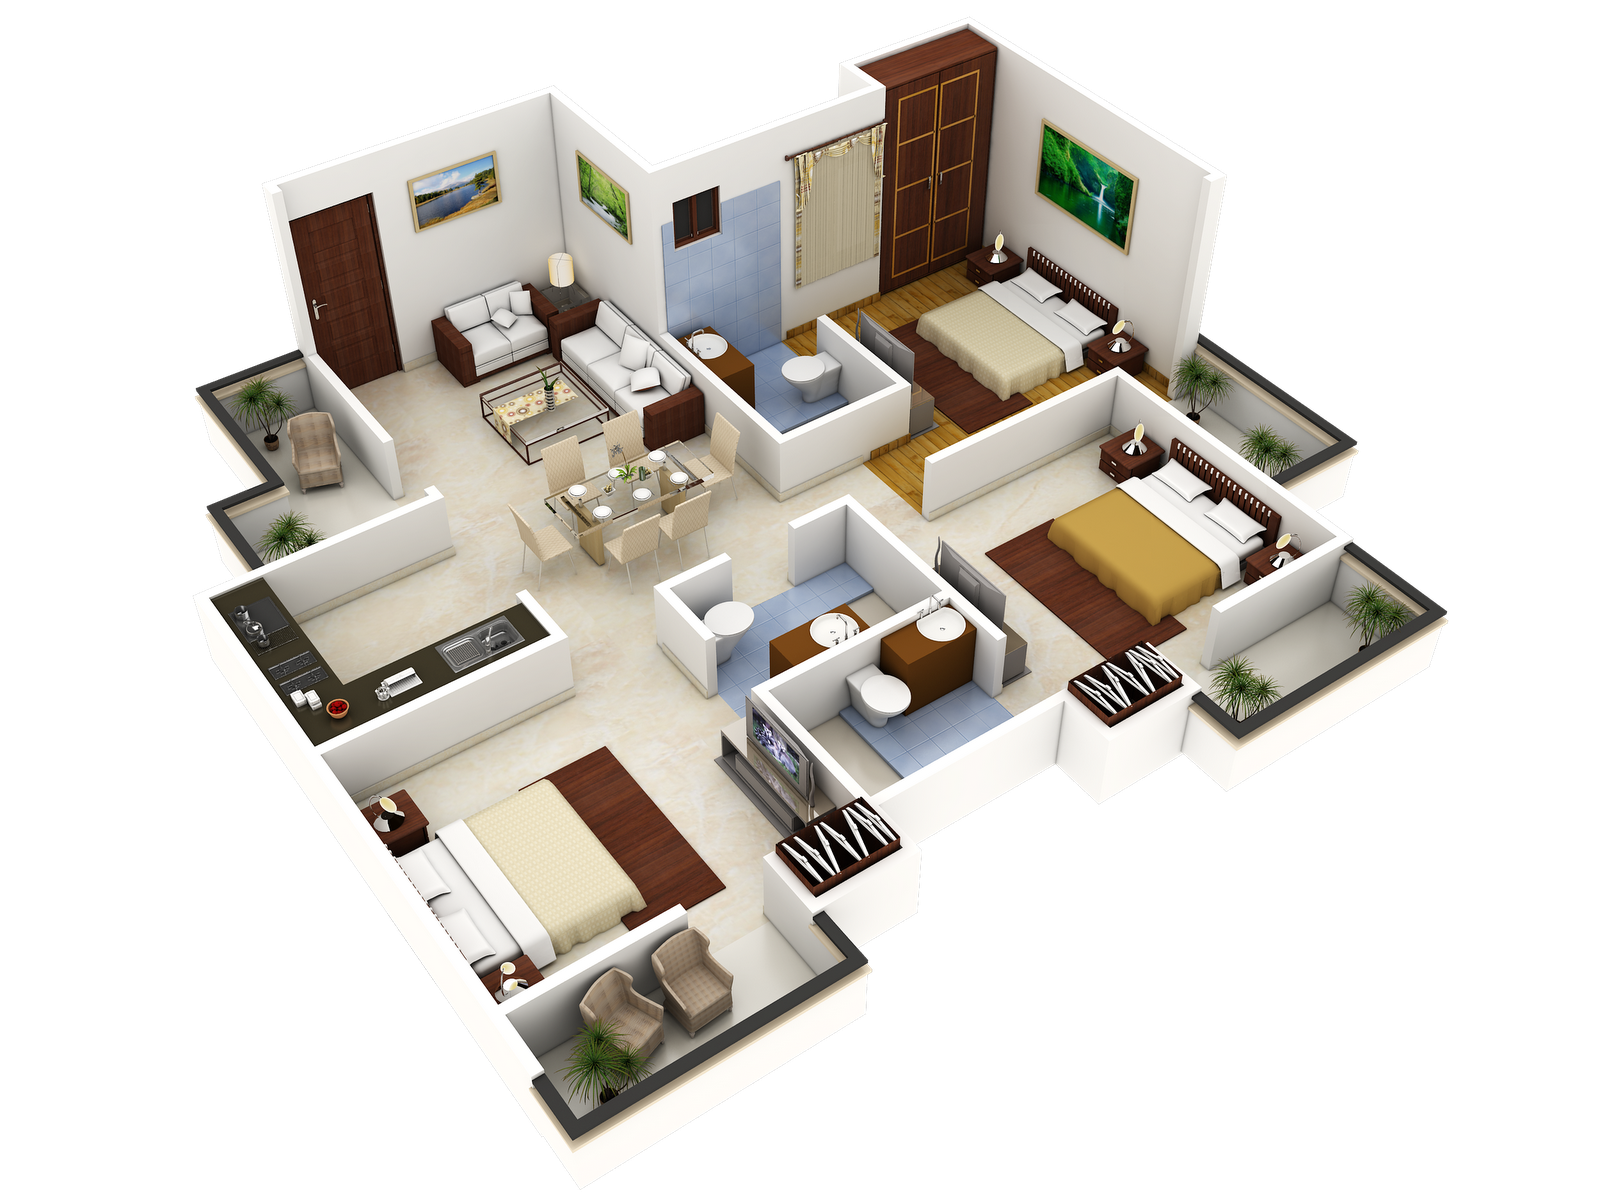 3 bedroom house designs 3d buscar con google grandes for Small house plan design 3d